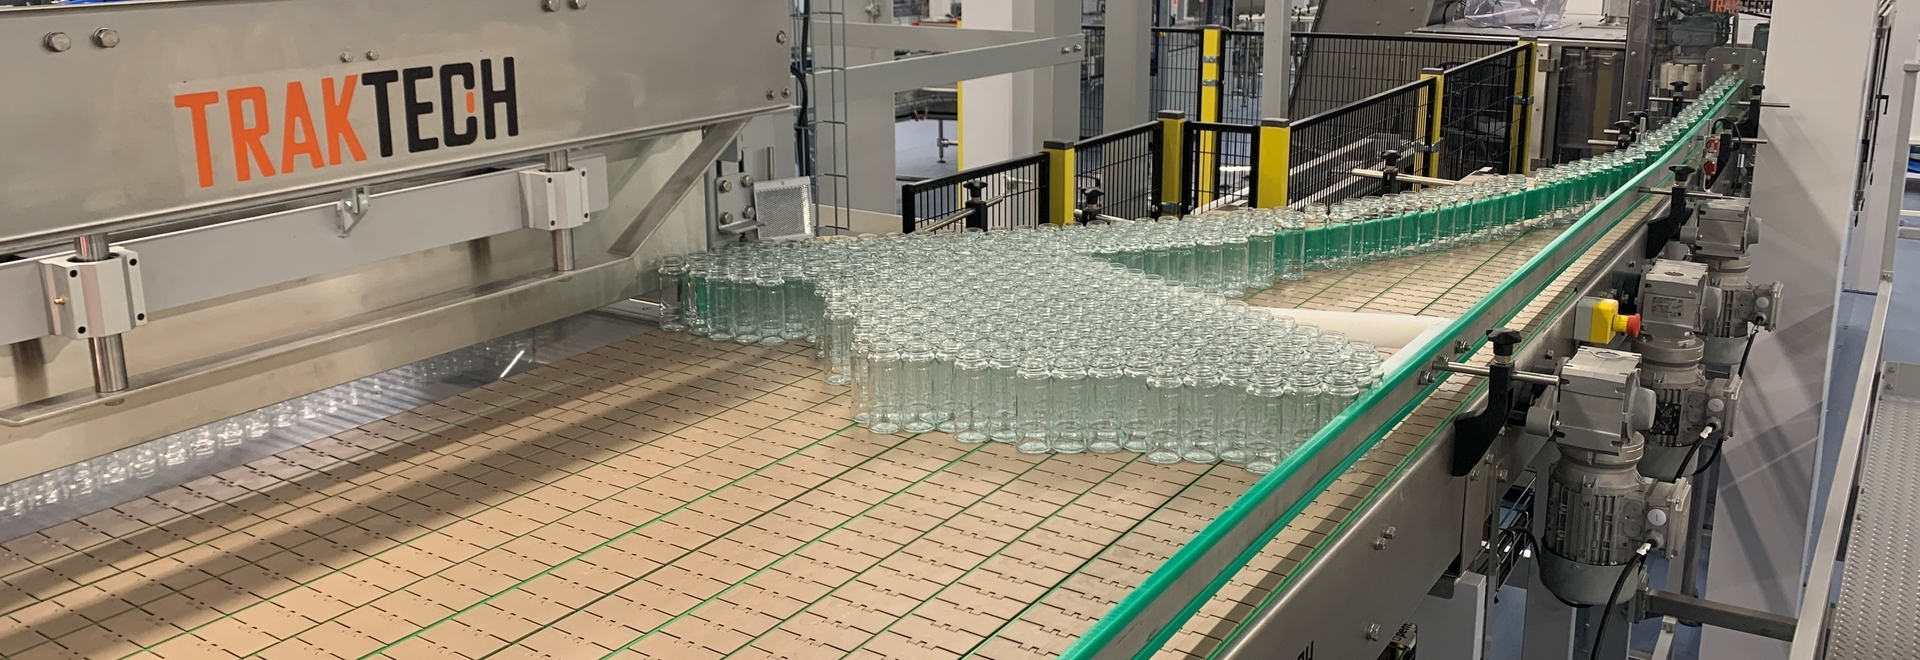 Beginning of a filling line for multiformat containers